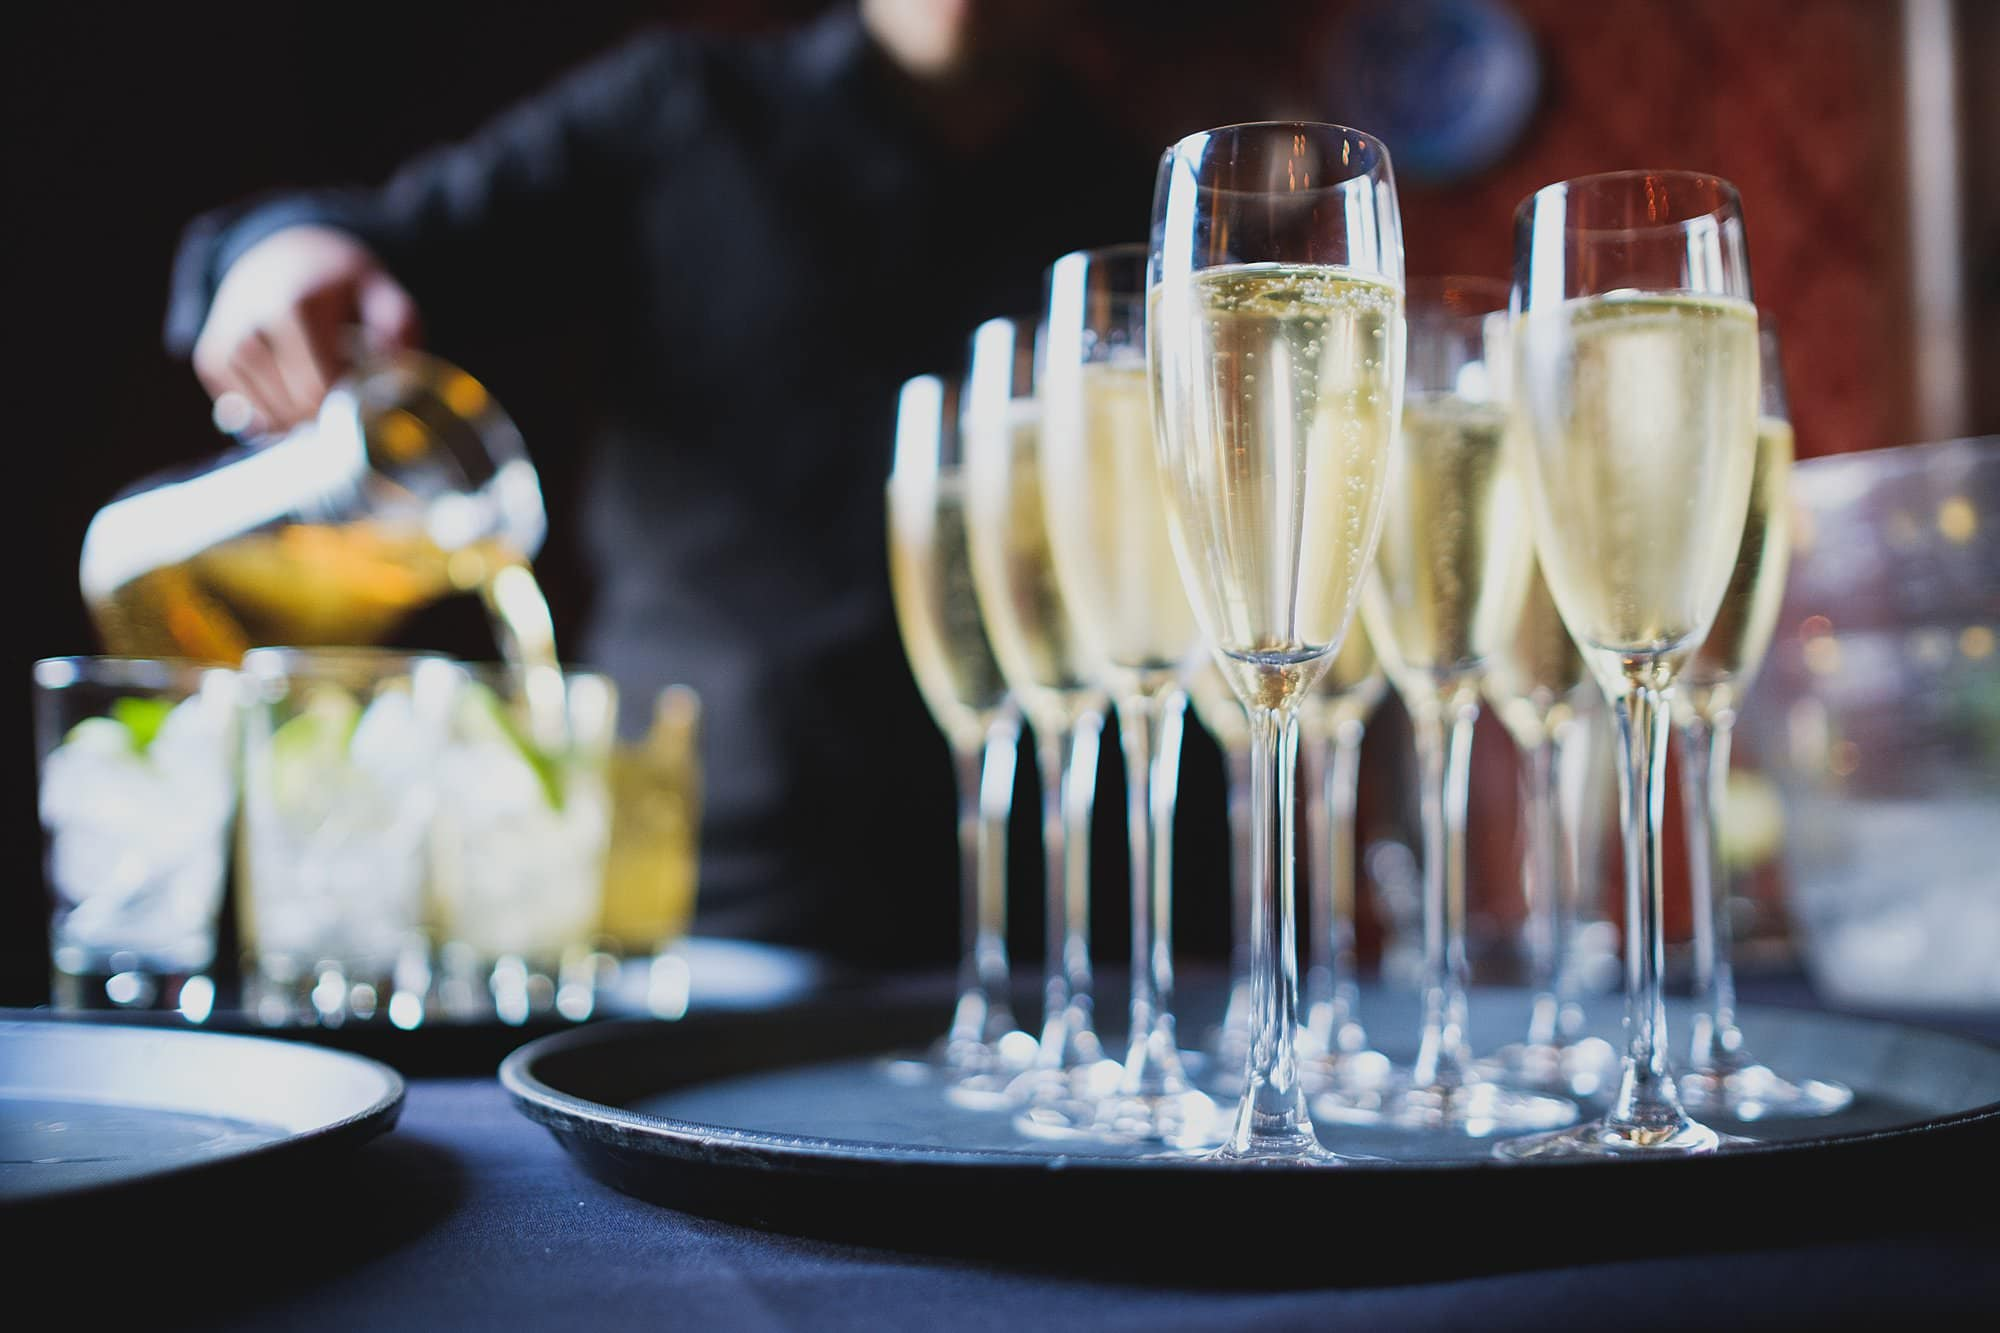 champagne served during leighton house museum event